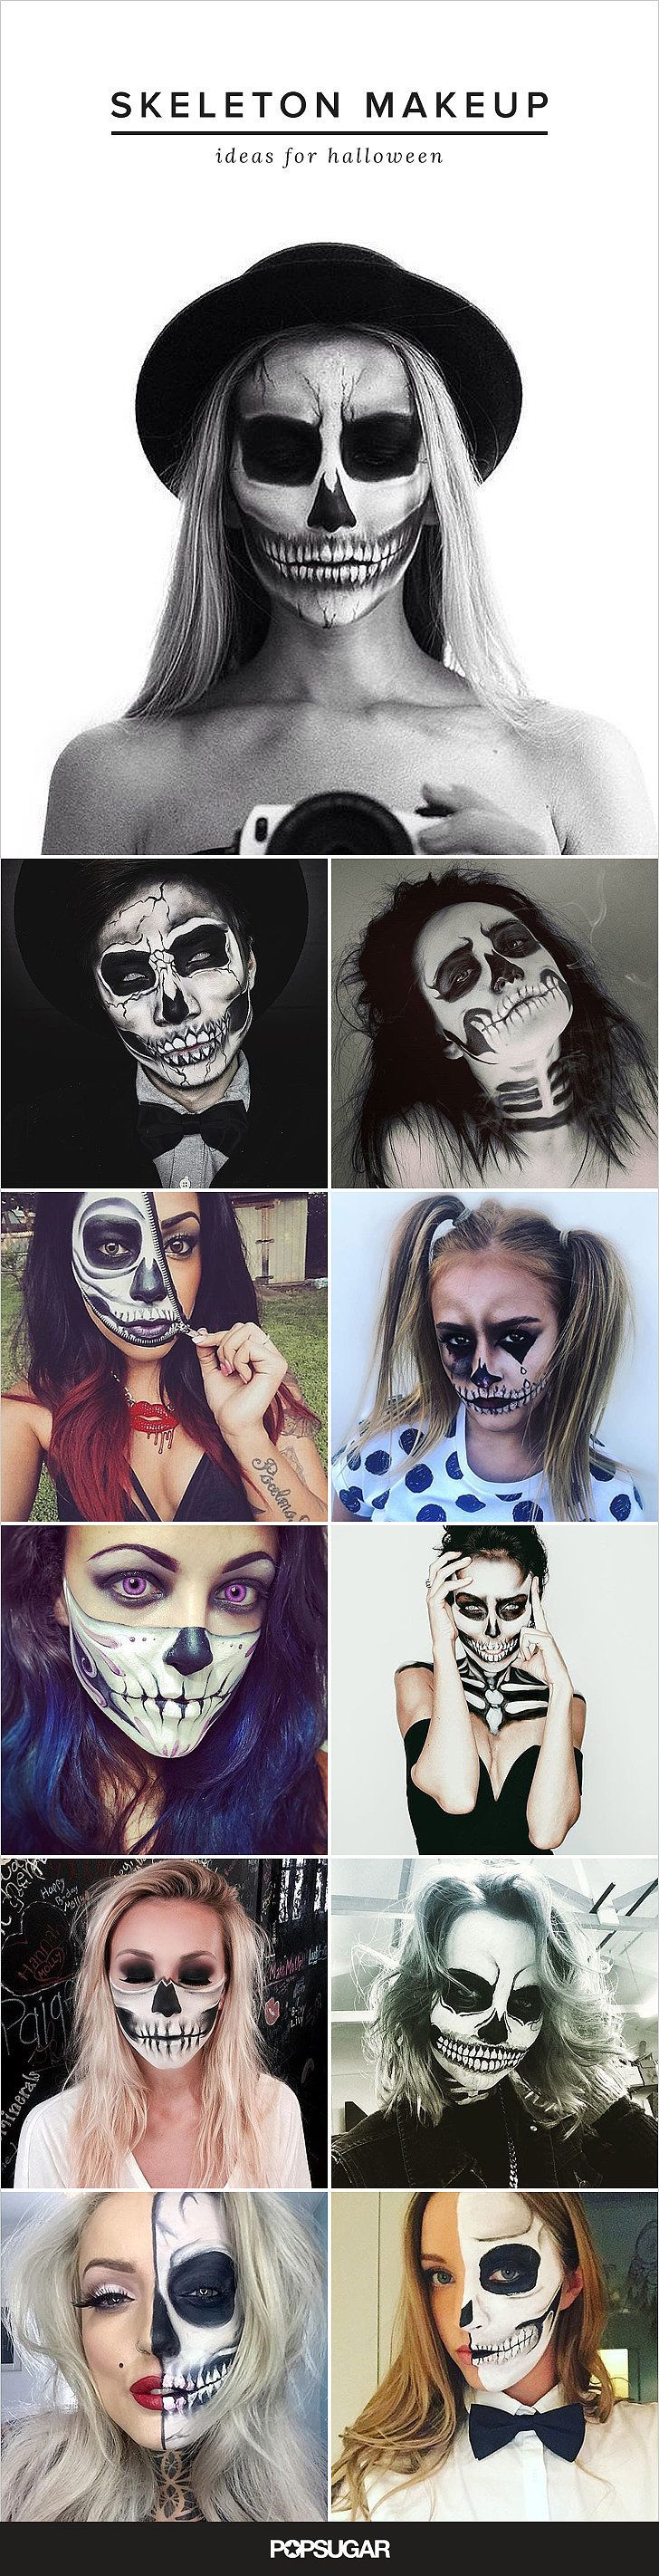 best holidays images on pinterest halloween ideas halloween